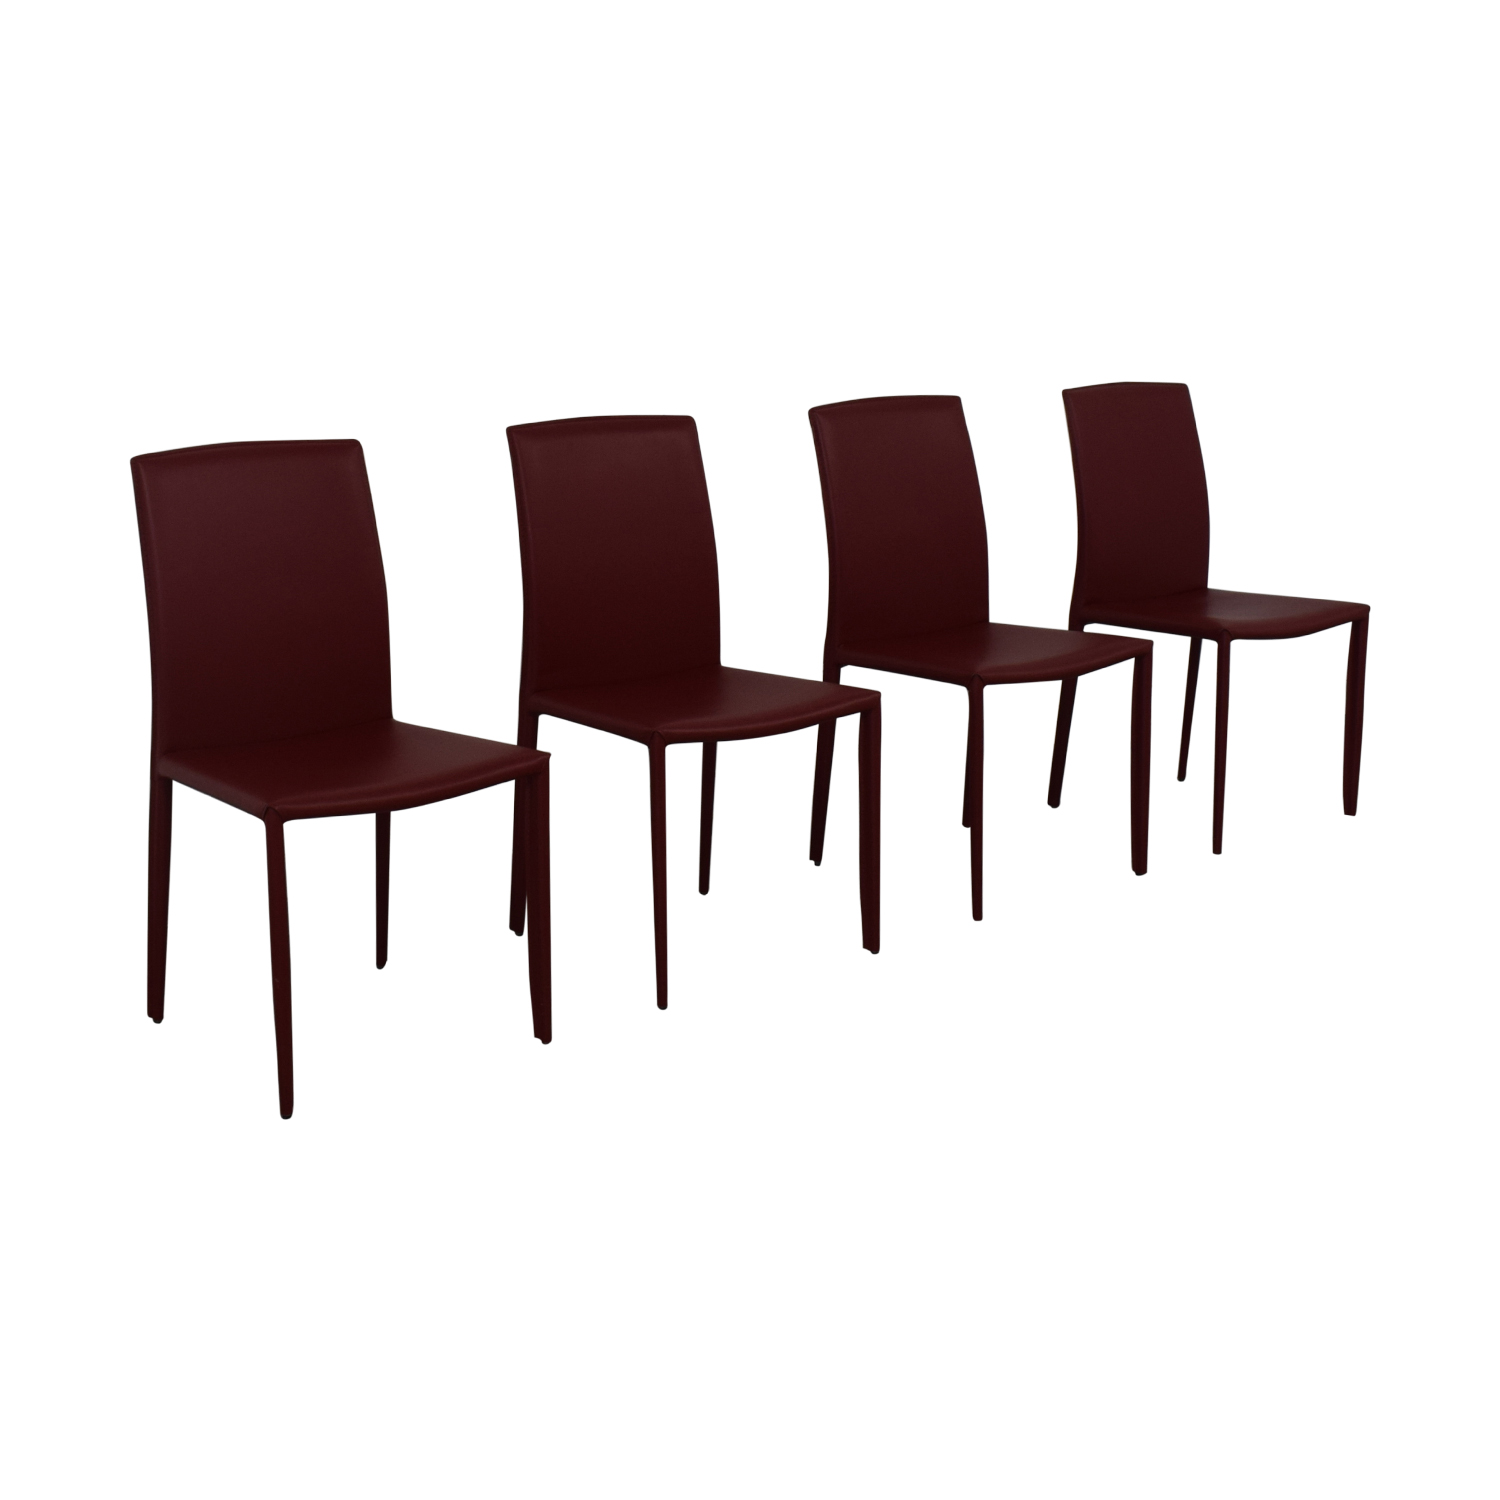 Modloft Modloft Dining Chairs on sale